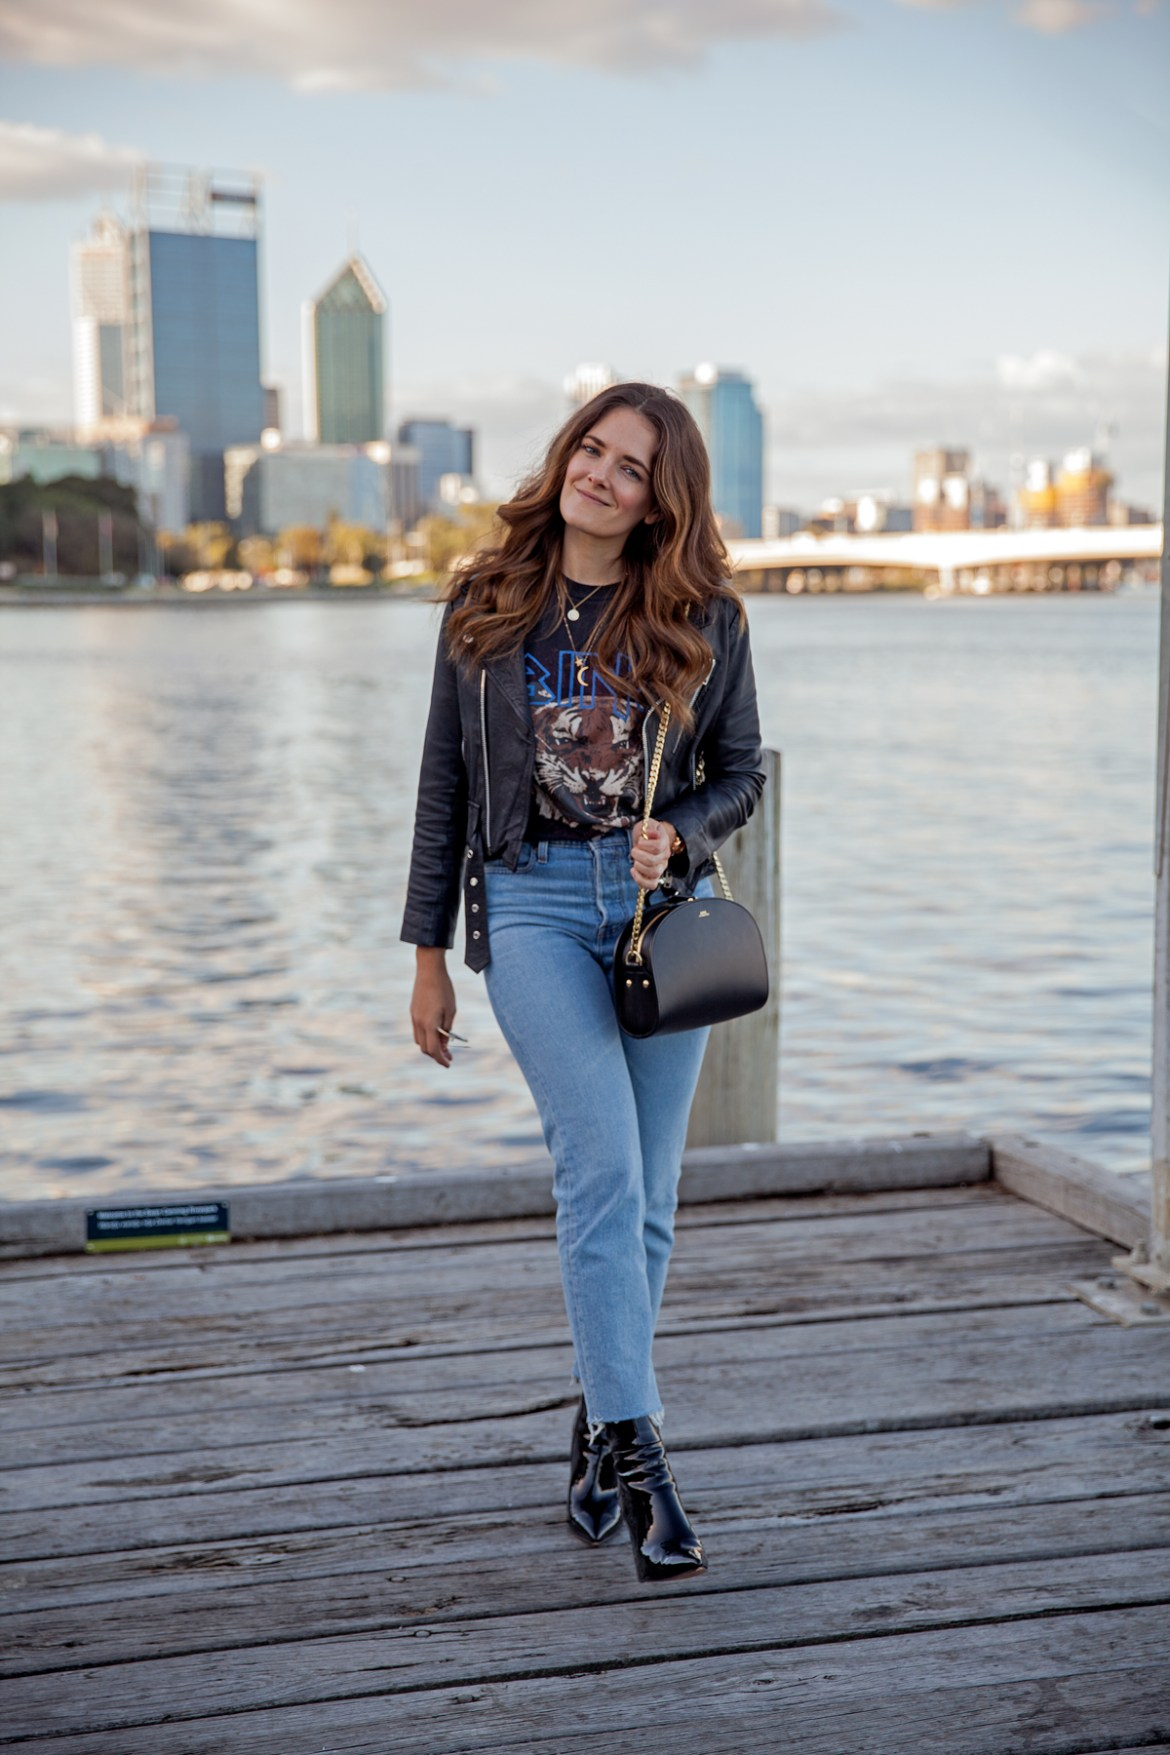 winter Anine Bing graphic tee, Levi's jeans, leather jacket and Alias Mae patent leather boots worn by Jenelle Witty, fashion blogger from Inspiring Wit in Perth